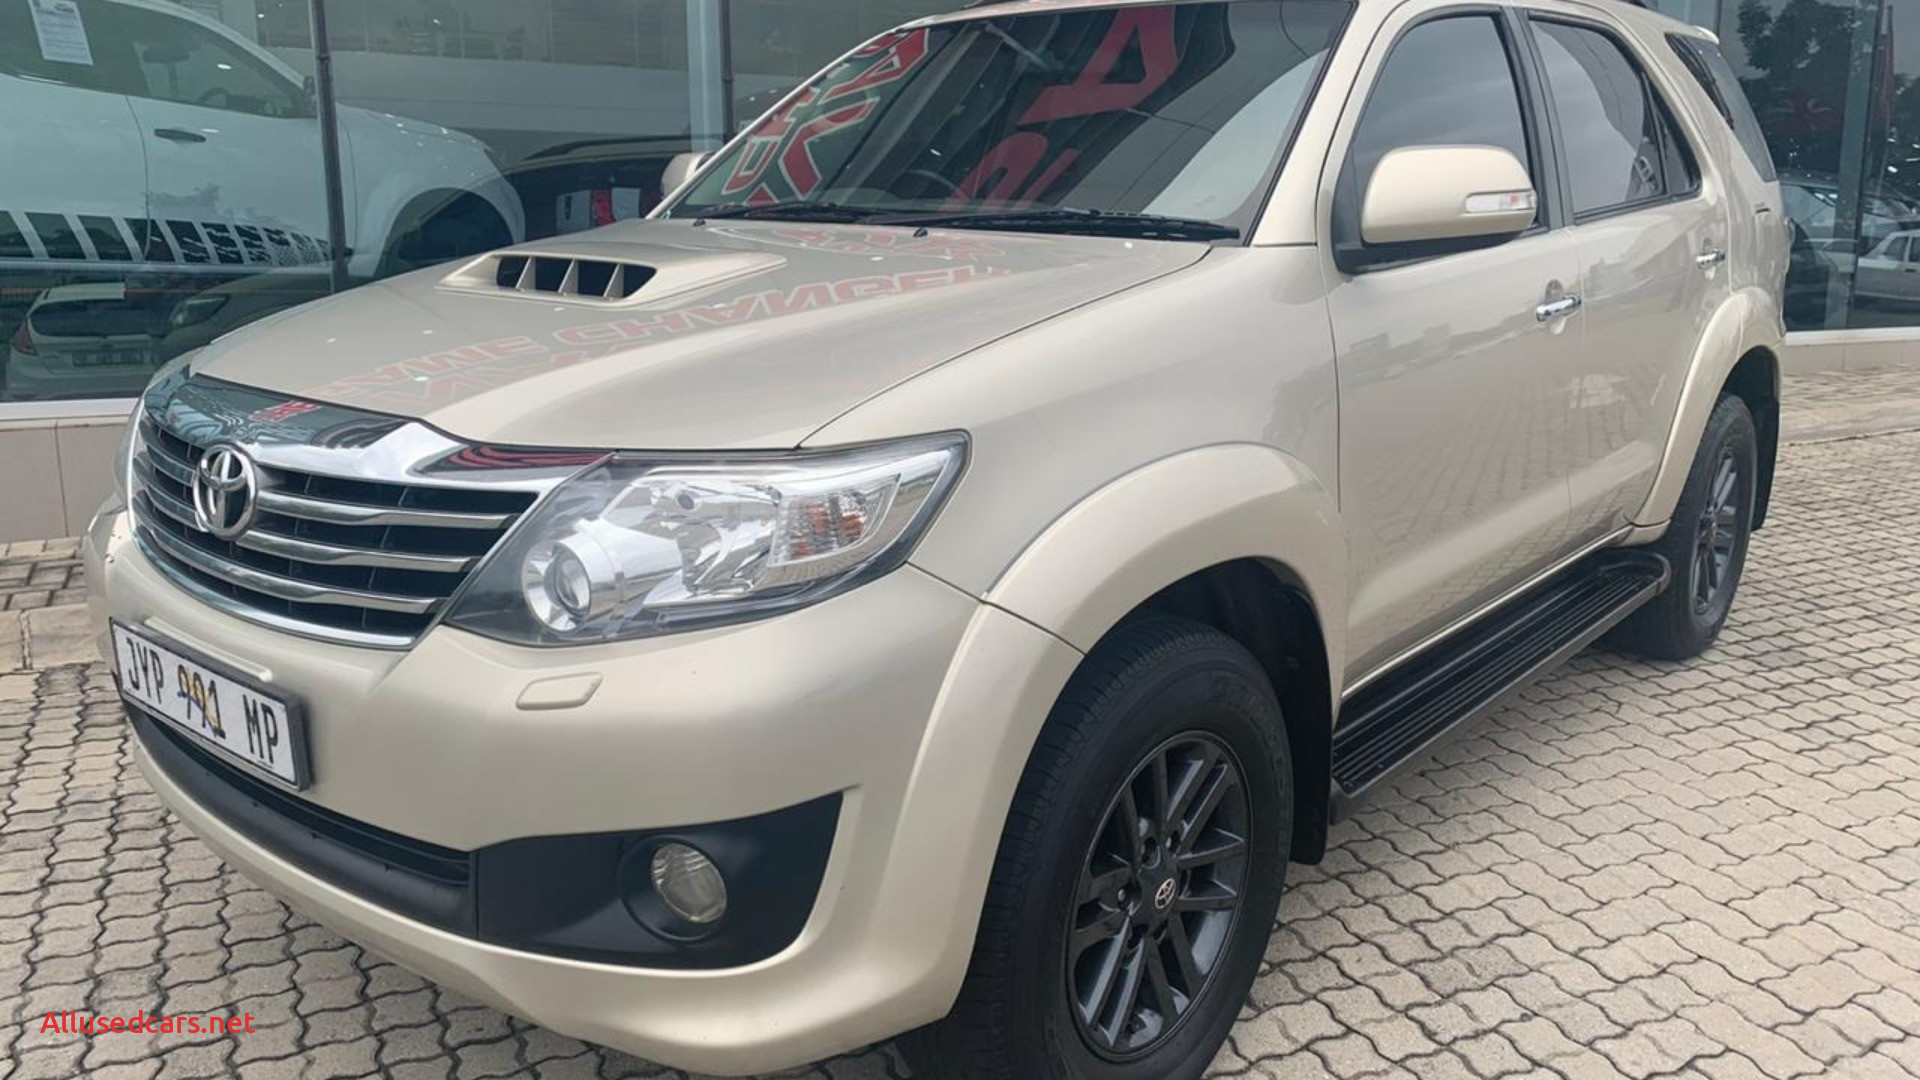 toyota fortuner 3 0d 4d auto 2013 id or